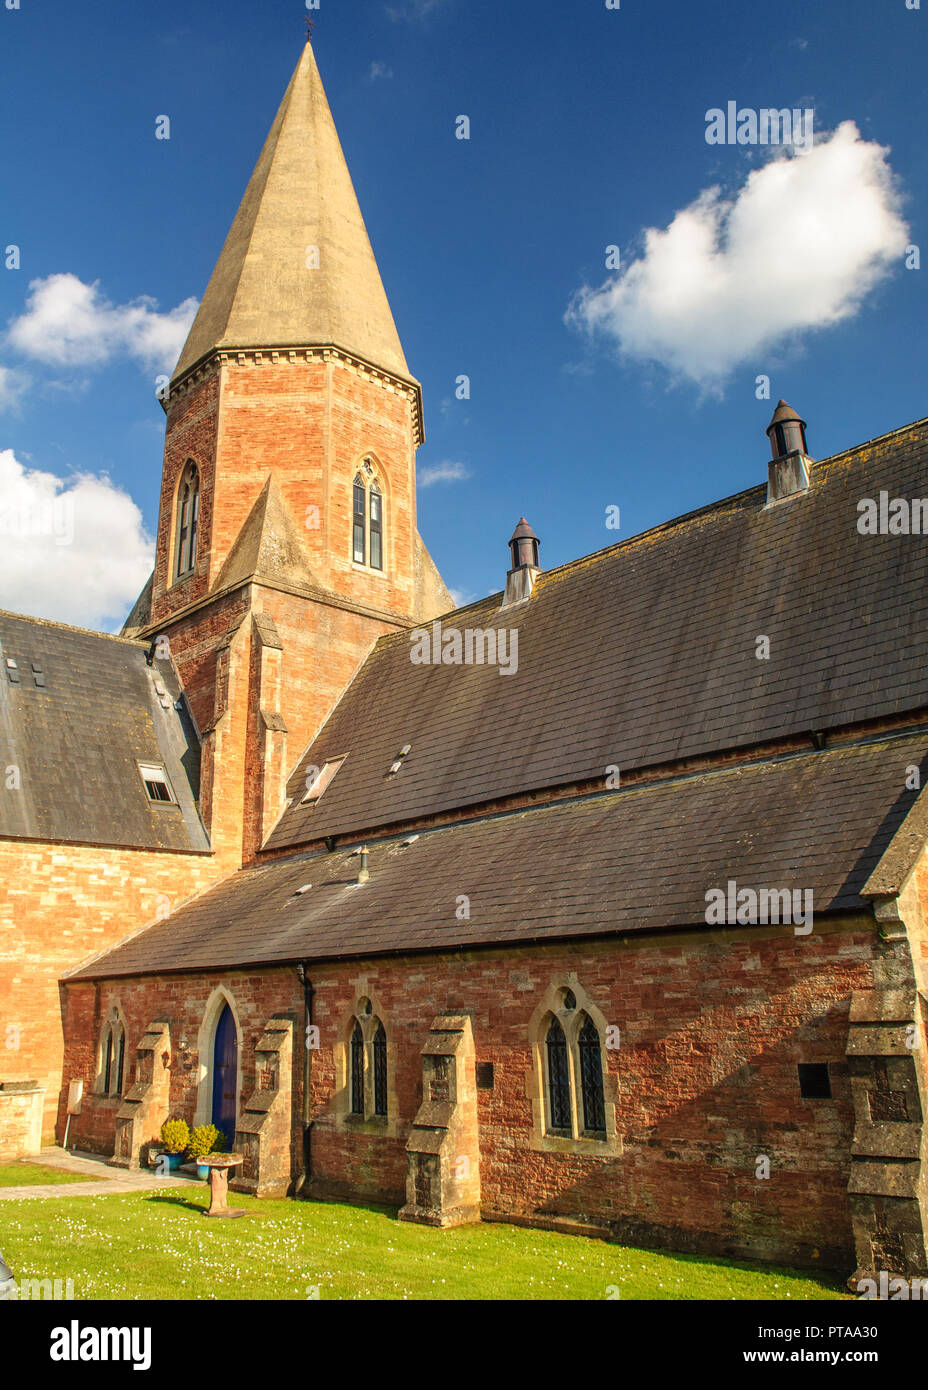 Wells, England, UK - May 25, 2013: Summer sun shines on the former church of the Mendip Hospital at South Horrington near Wells in Somerset, now conve - Stock Image